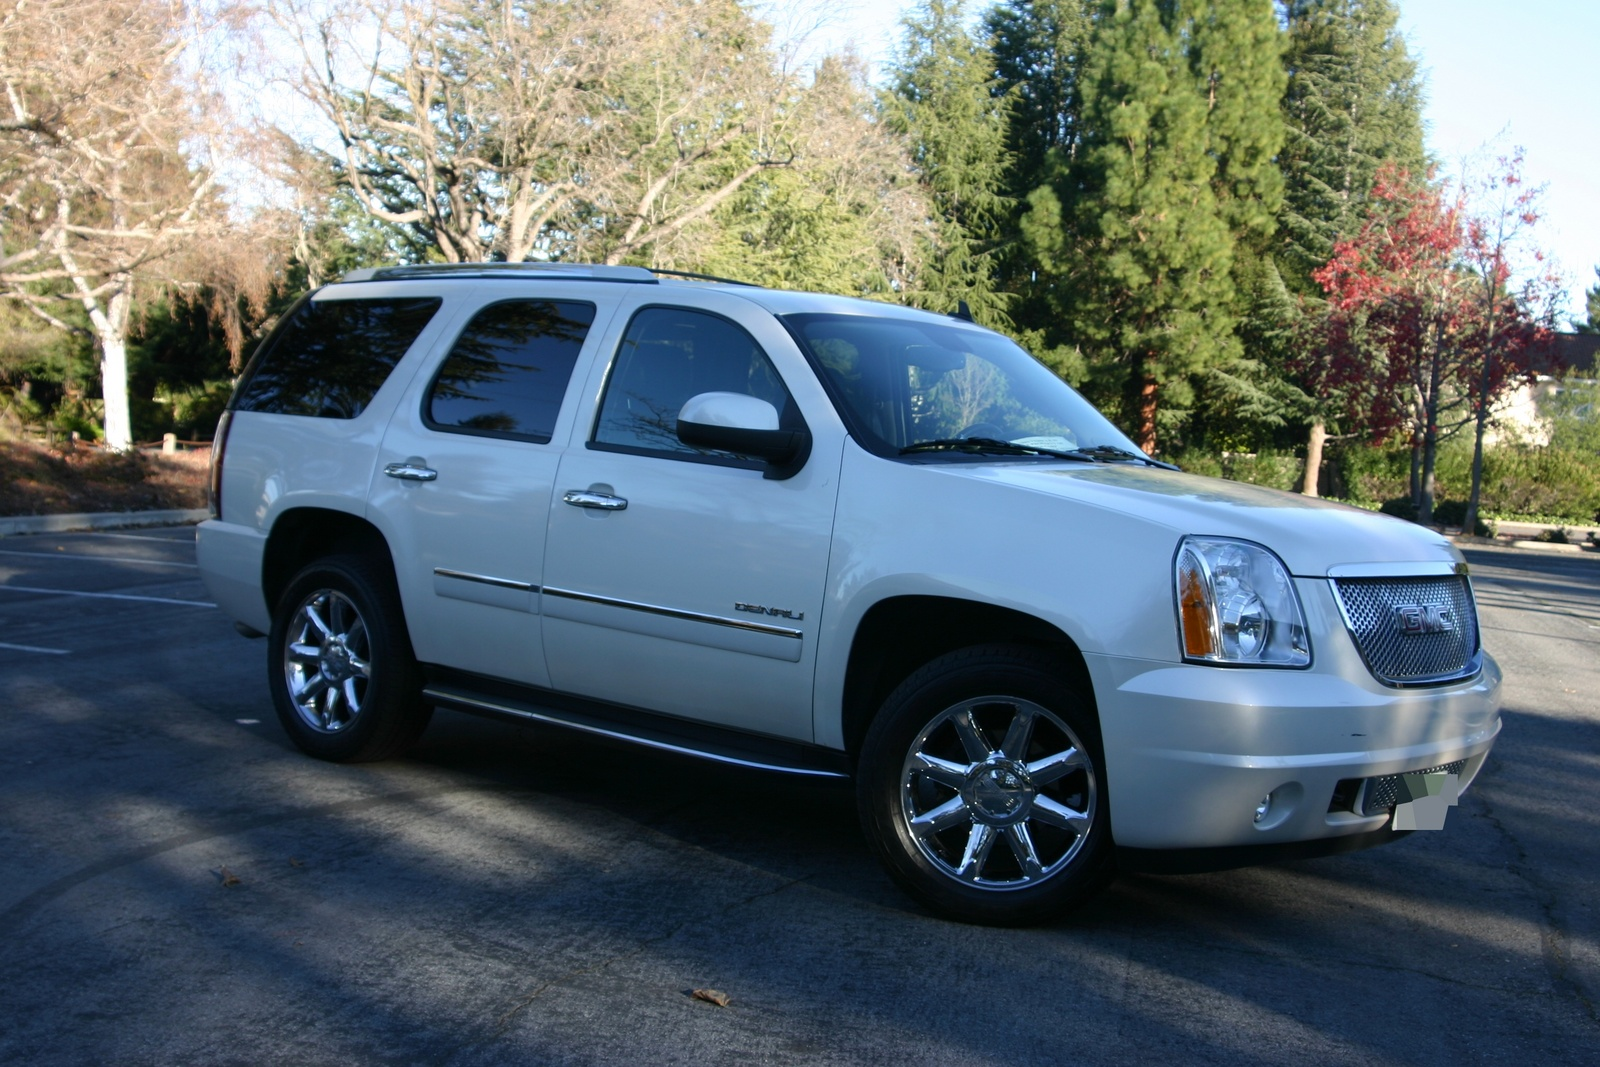 2010 gmc yukon denali pictures cargurus. Black Bedroom Furniture Sets. Home Design Ideas